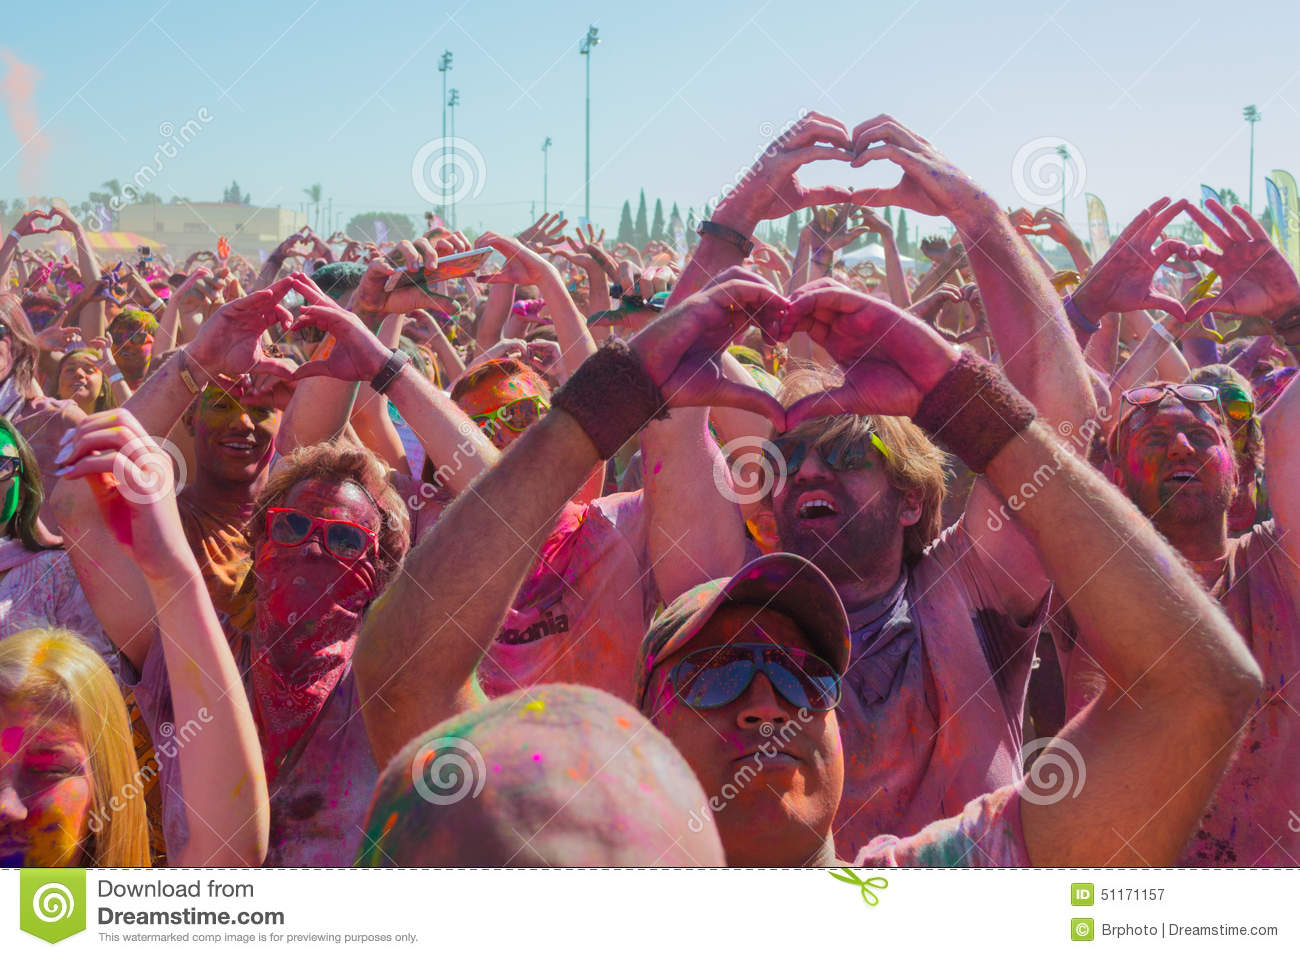 Pollution form during holi festival